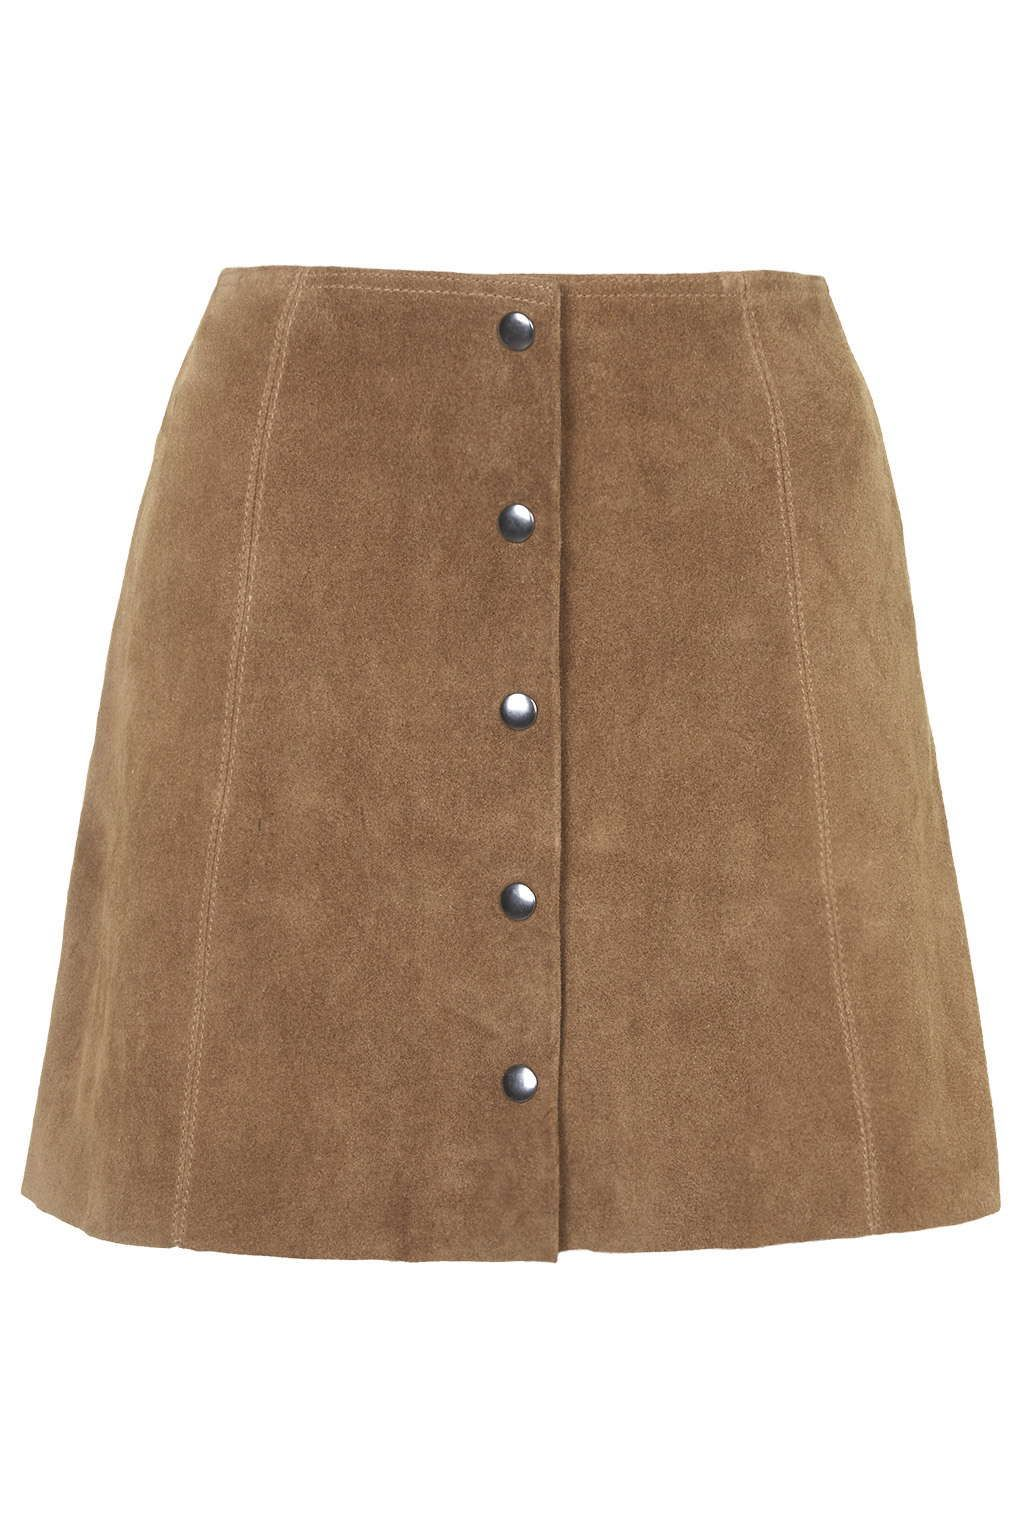 PETITE Suede Button Front A-Line Skirt - Petite - Clothing - Topshop